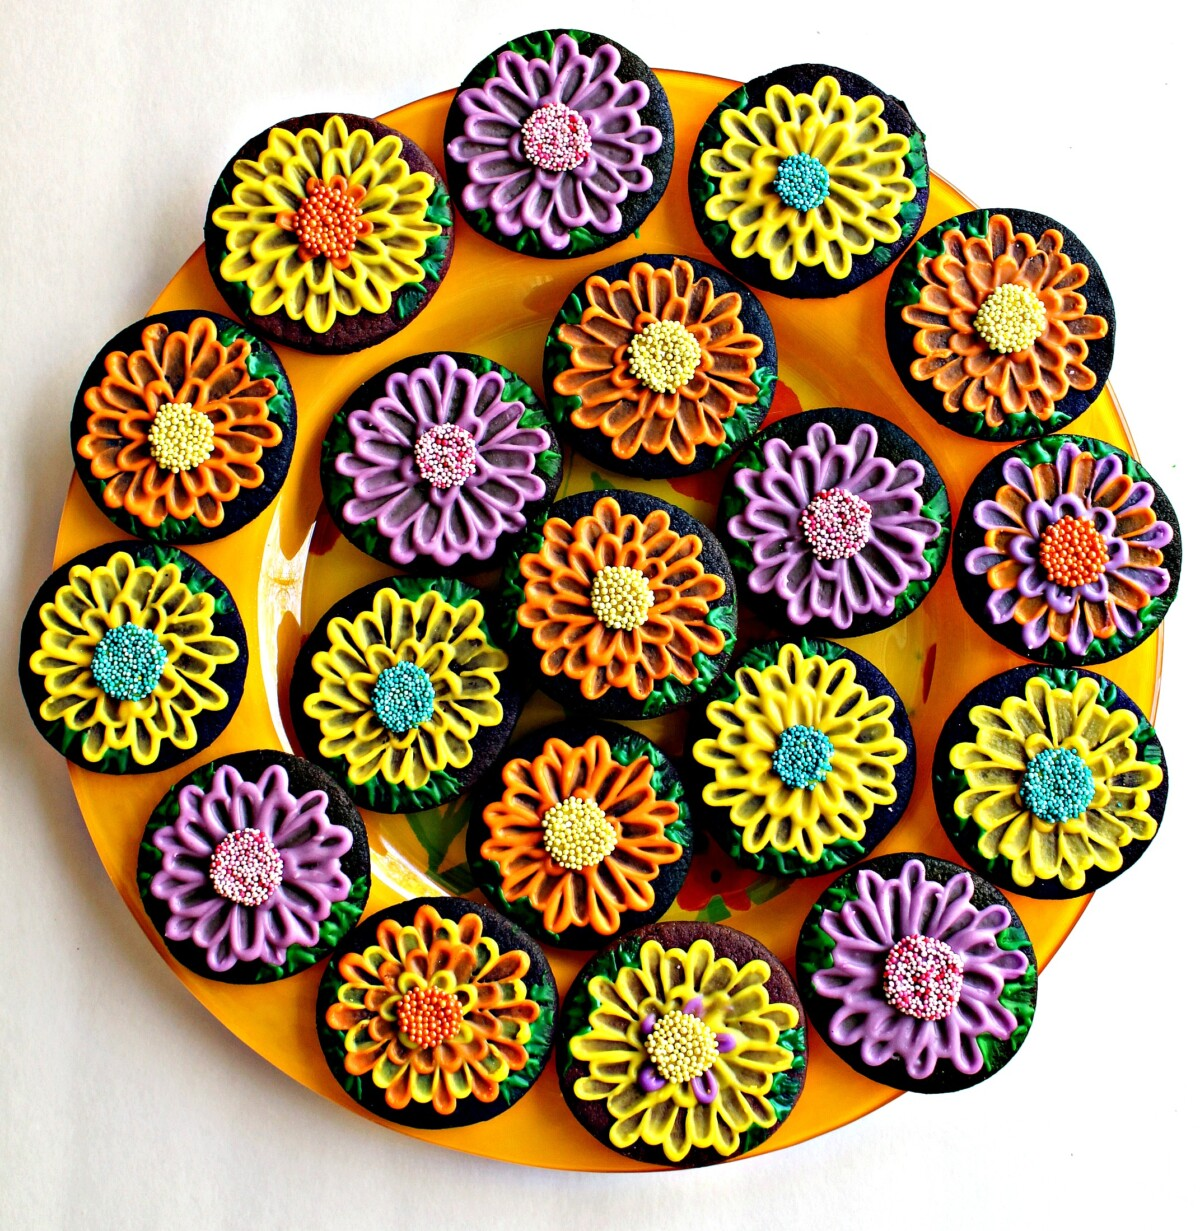 May Flowers Sugar Cookies  in many colors on a round, yellow platter.